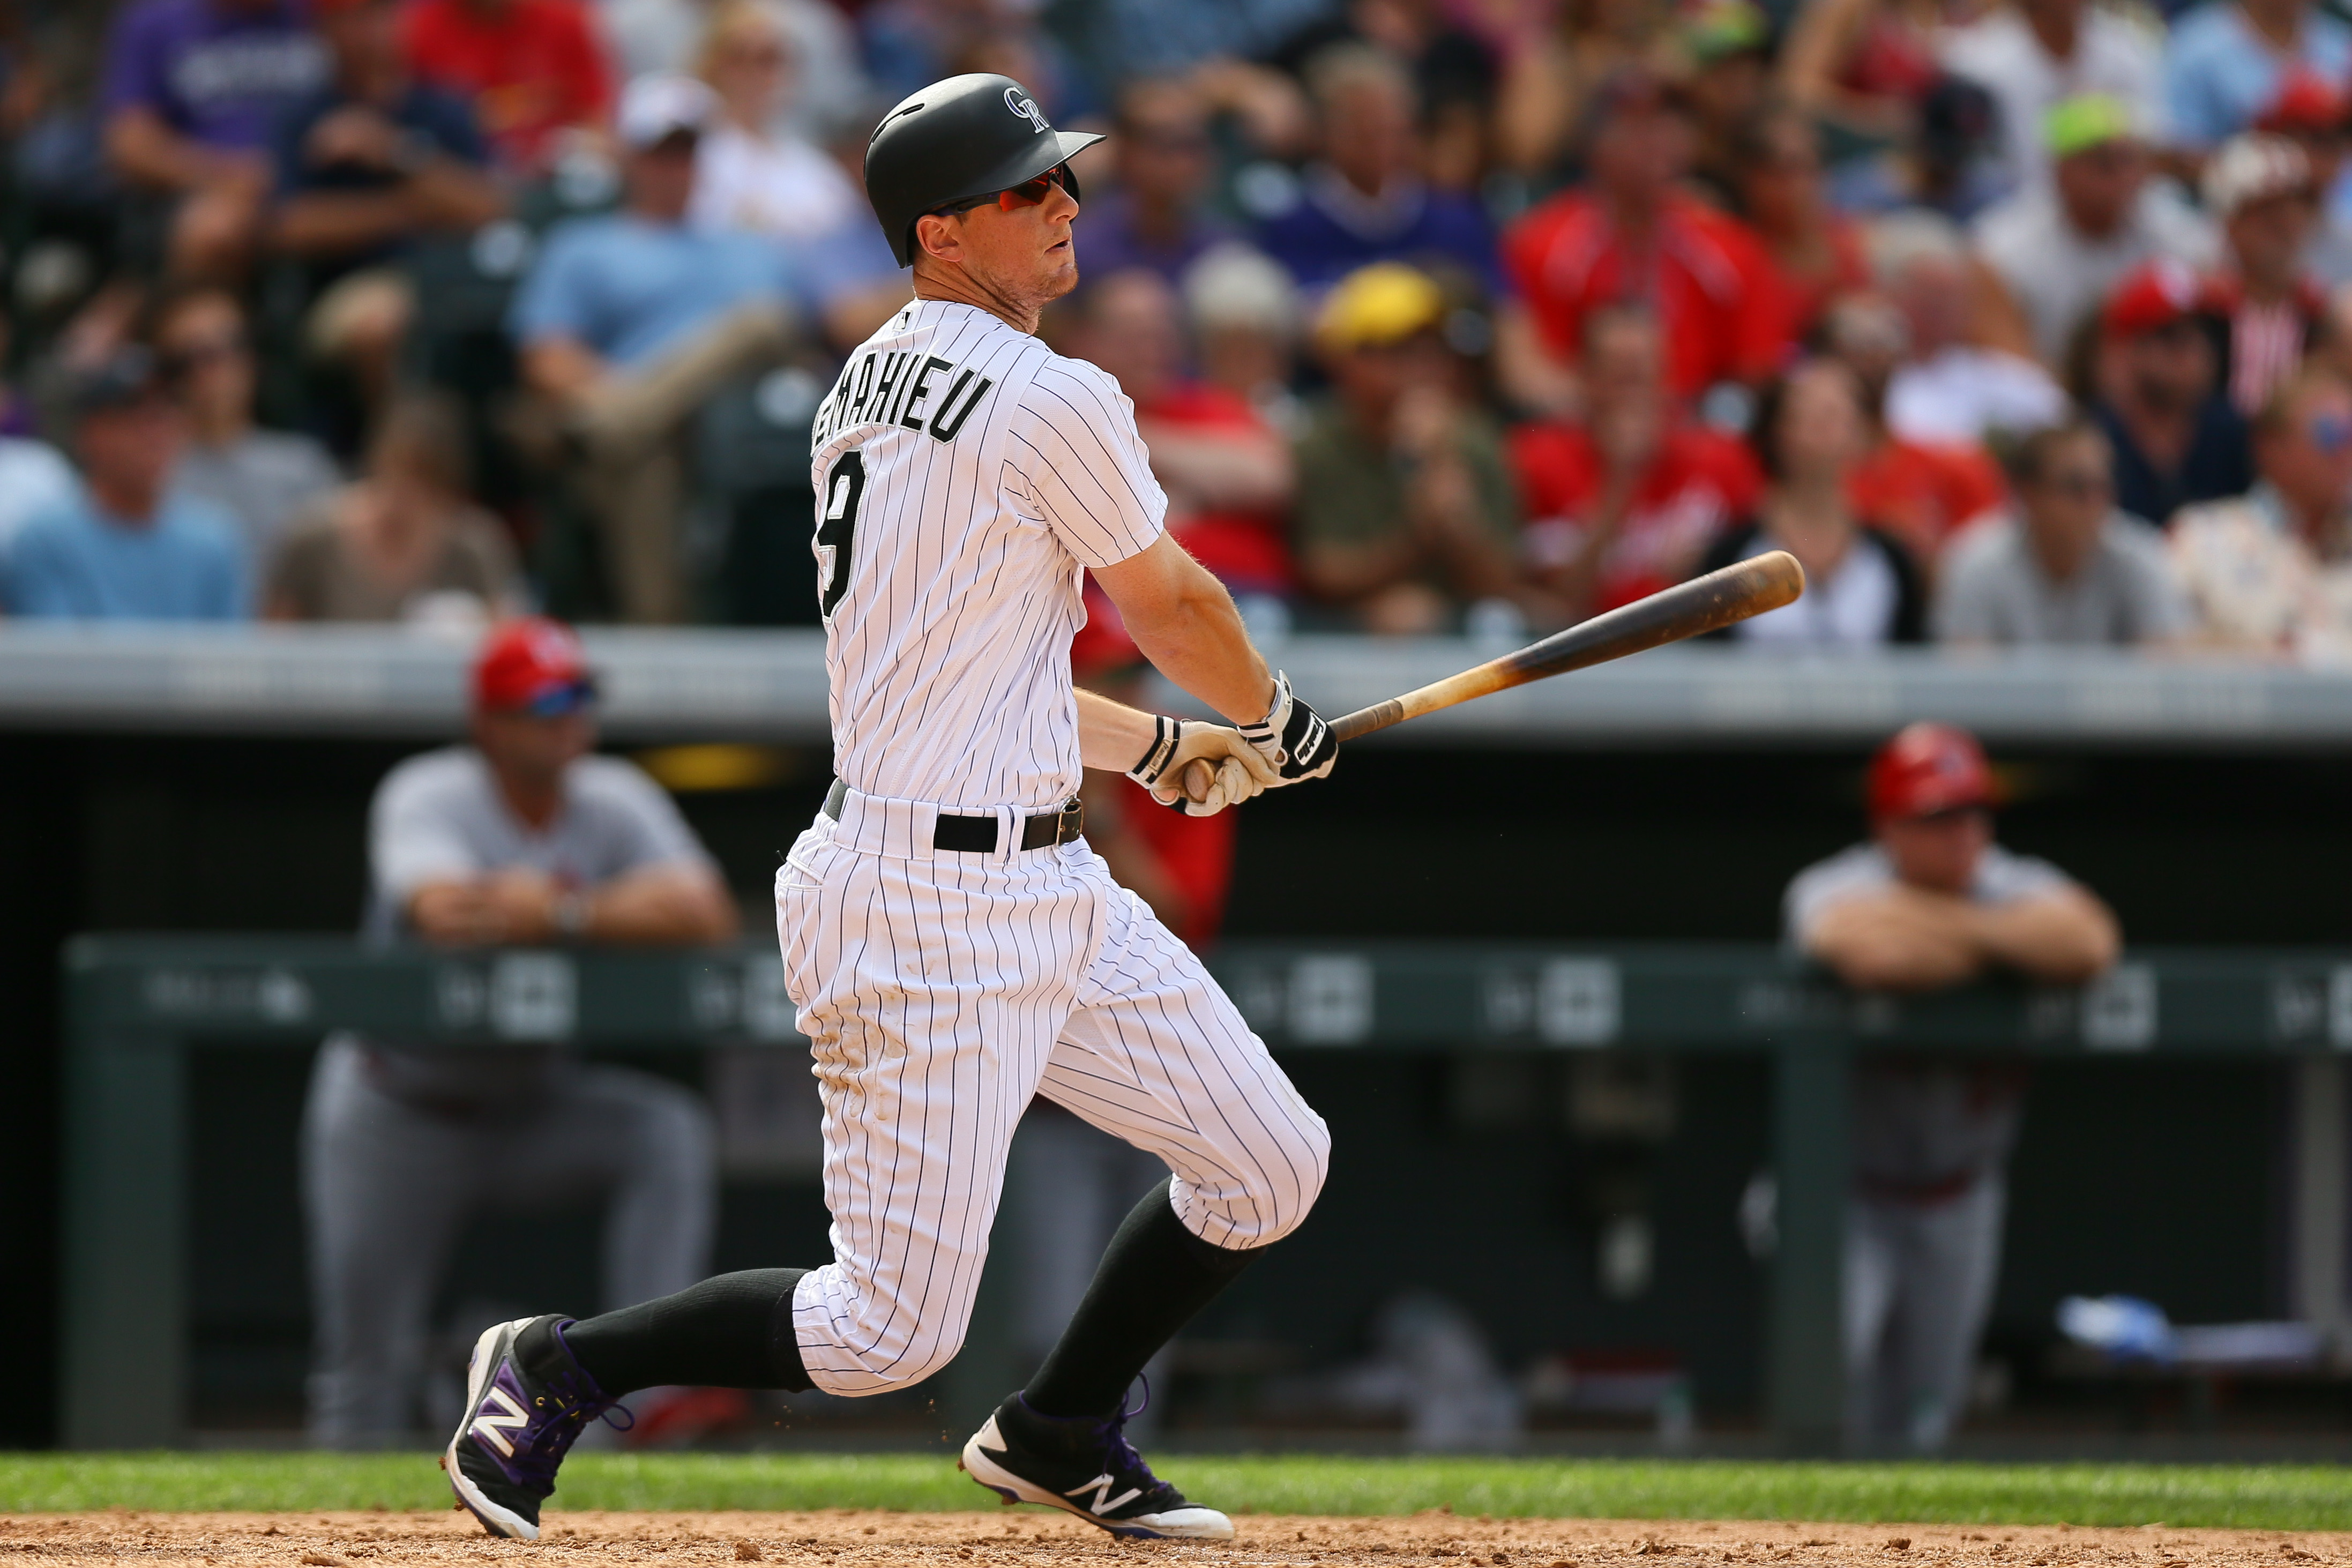 DENVER, CO - SEPTEMBER 21: DJ LeMahieu #9 of the Colorado Rockies watches his RBI double during the seventh inning against the St. Louis Cardinals at Coors Field on September 21, 2016 in Denver, Colorado. (Photo by Justin Edmonds/Getty Images)